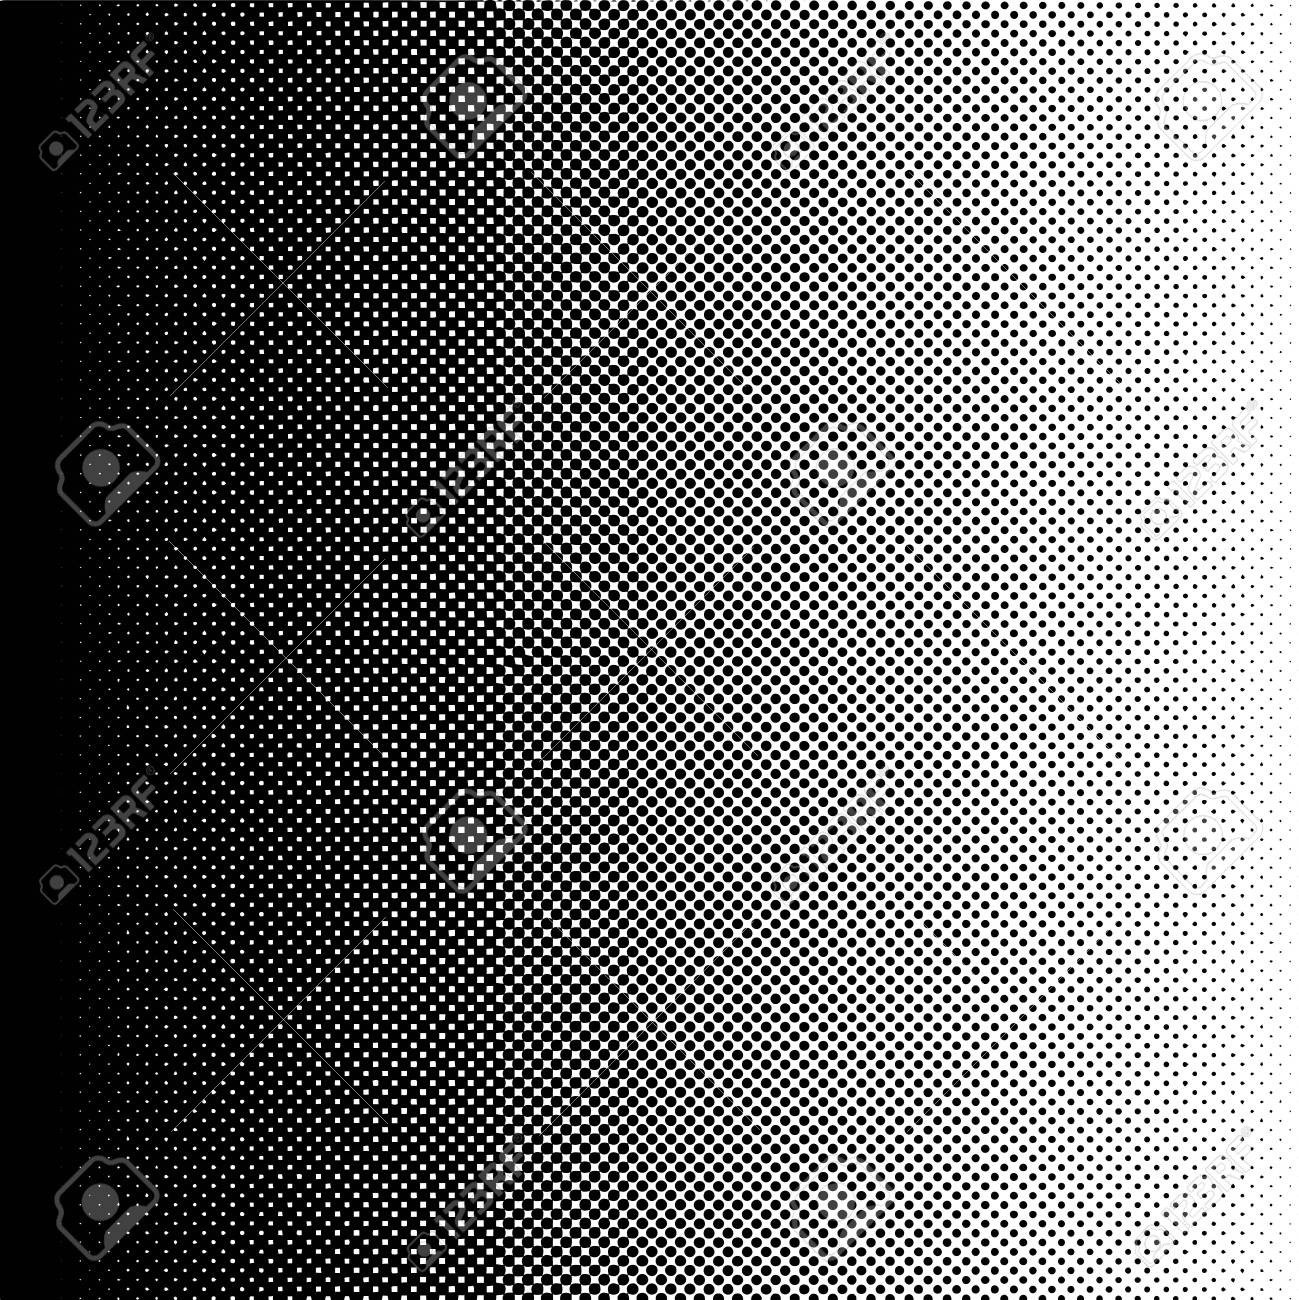 halftone gradient transition from black to white color, vector